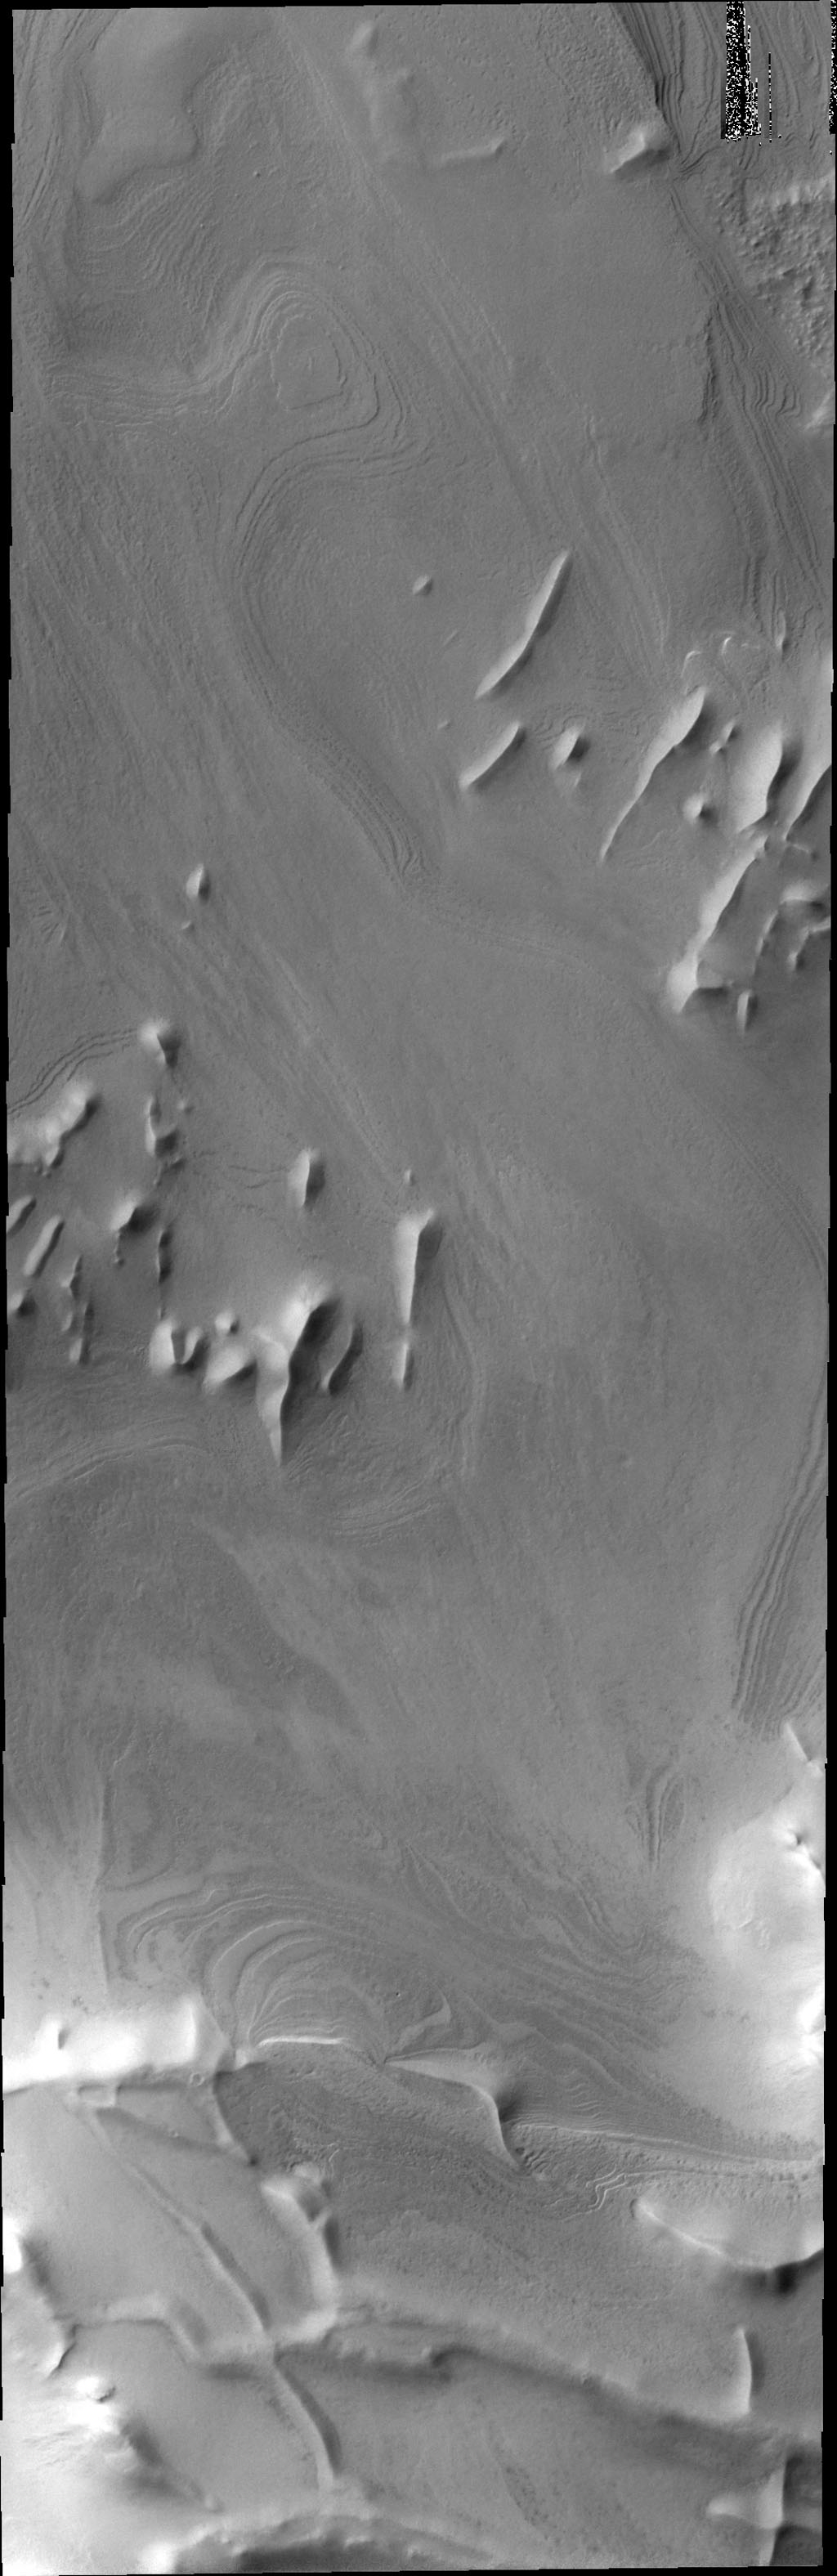 Located further north than yesterday's image, ridges are still prevalent in this image captured by NASA's 2001 Mars Odyssey spacecraft. Layers of material cover this region.